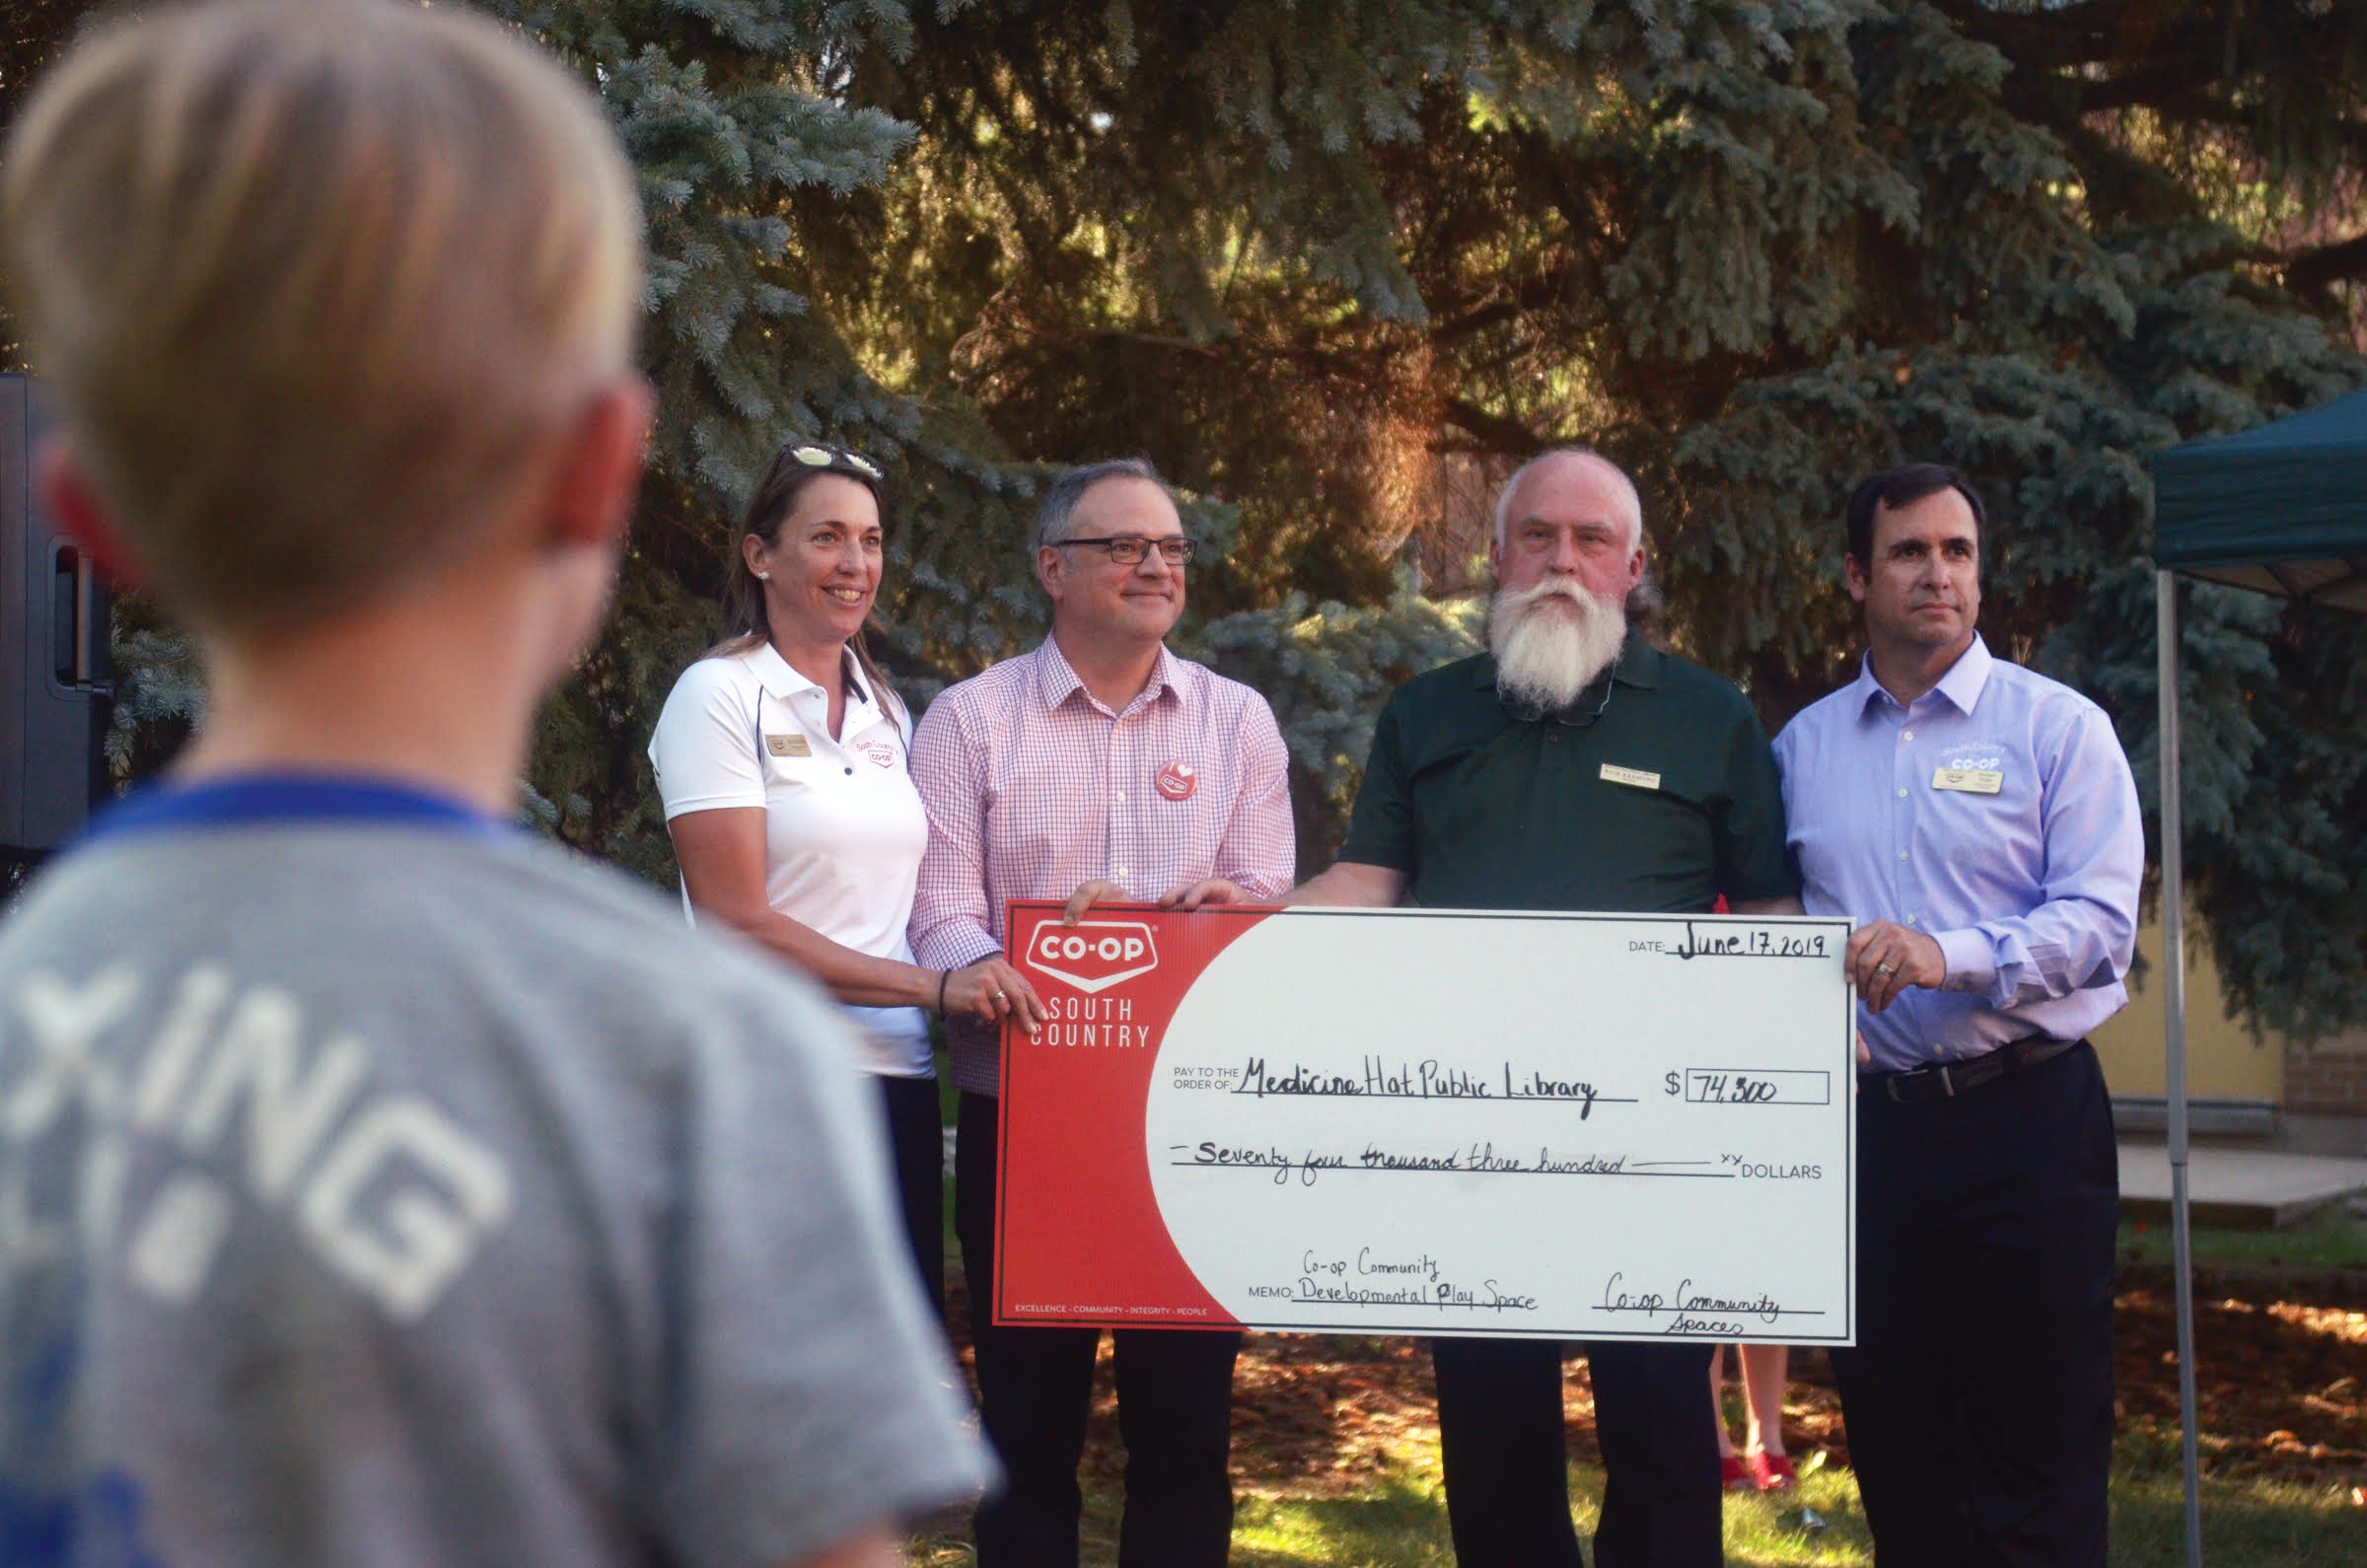 images/2334/co-op cheque presentation-photoshopped-gmr.jpg